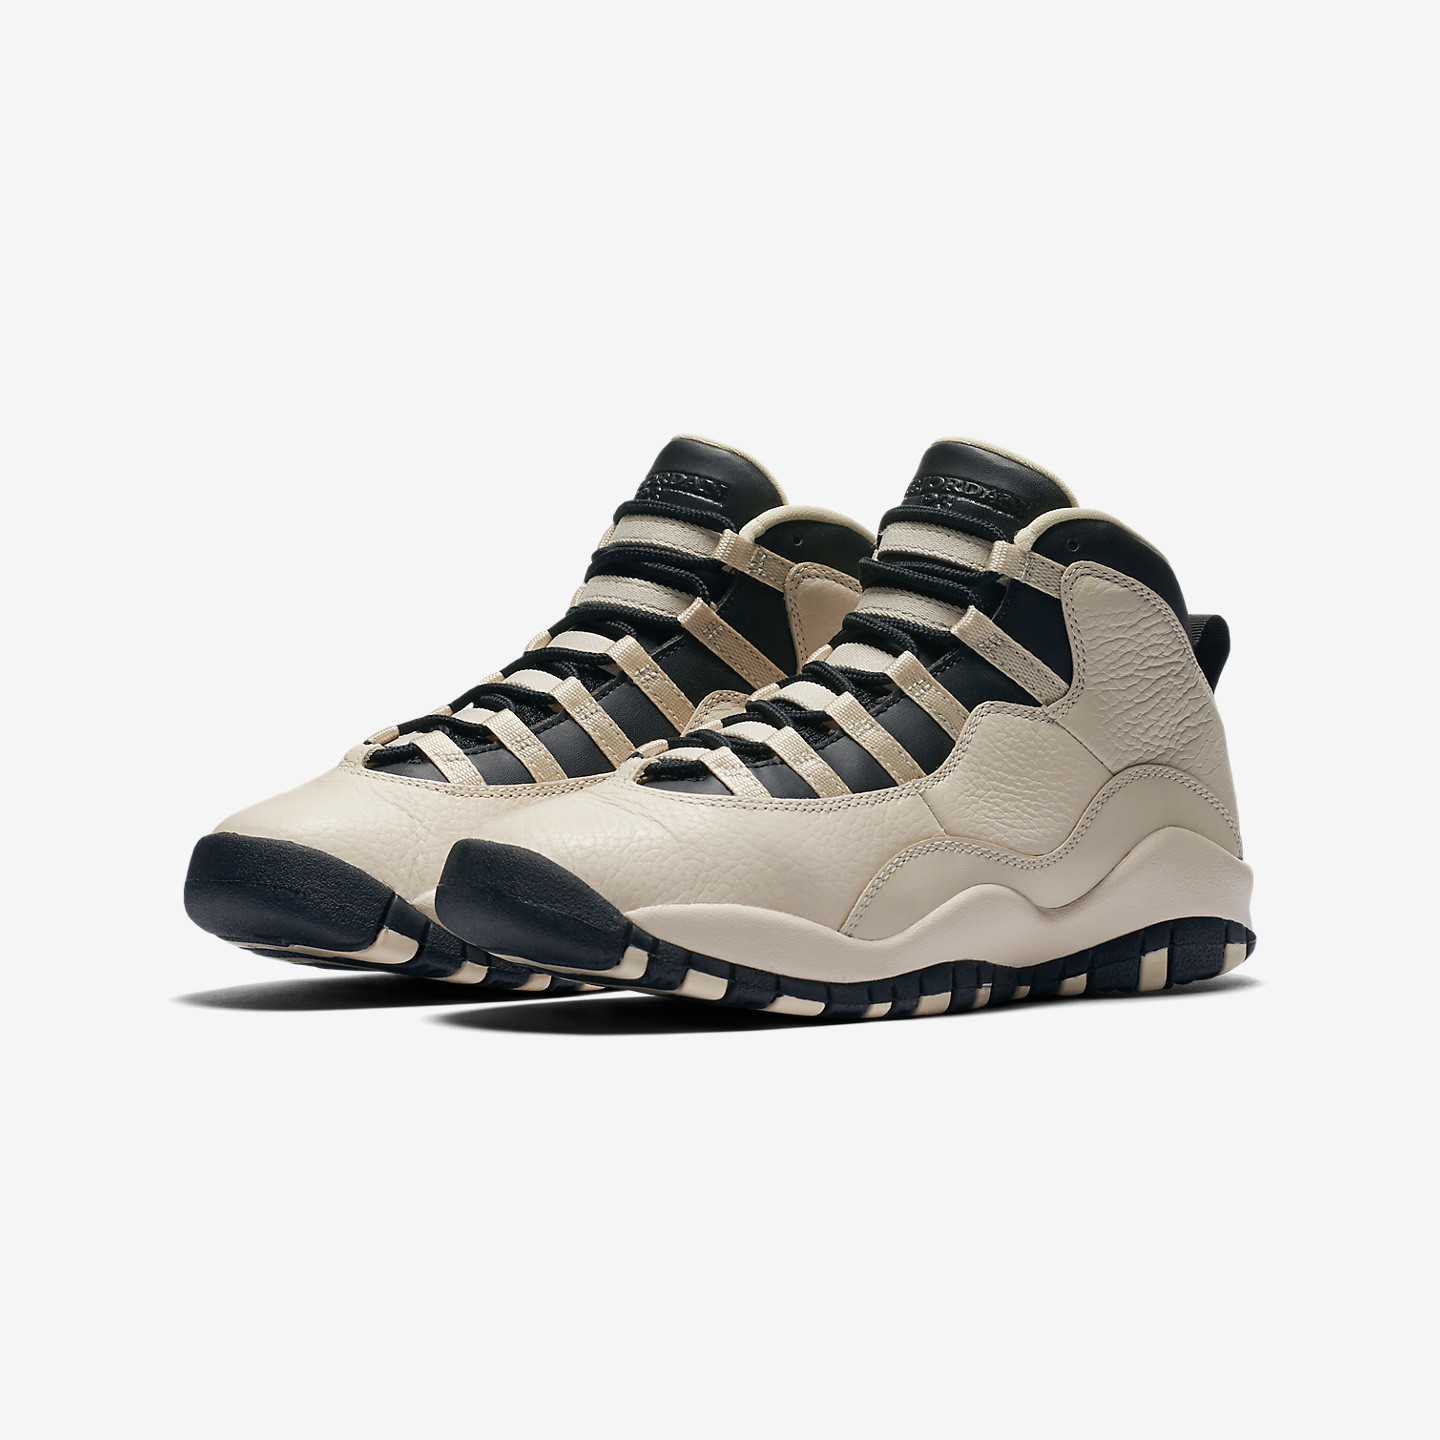 Jordan Air Jordan 10 Retro Premium GG Pearl White / Black 832645-207-41